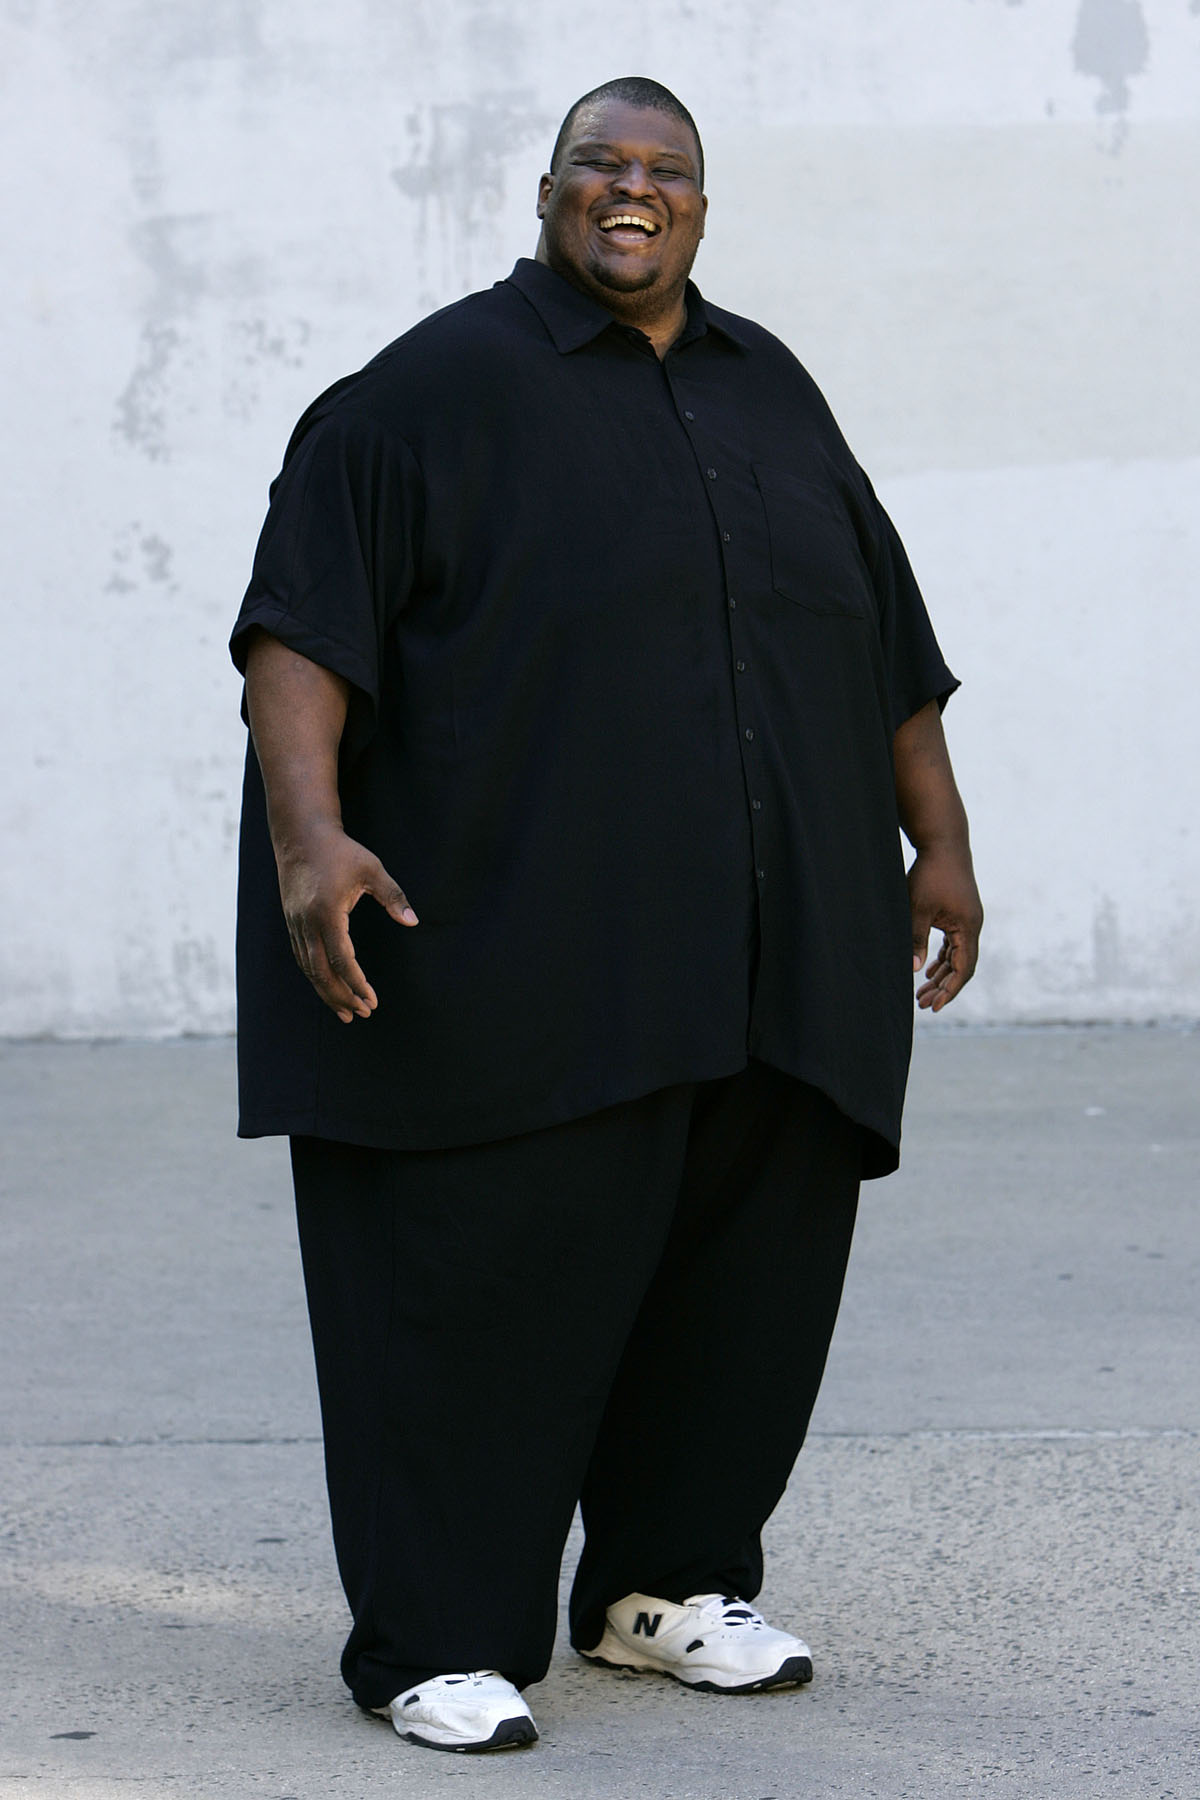 Emanuel Yarbrough